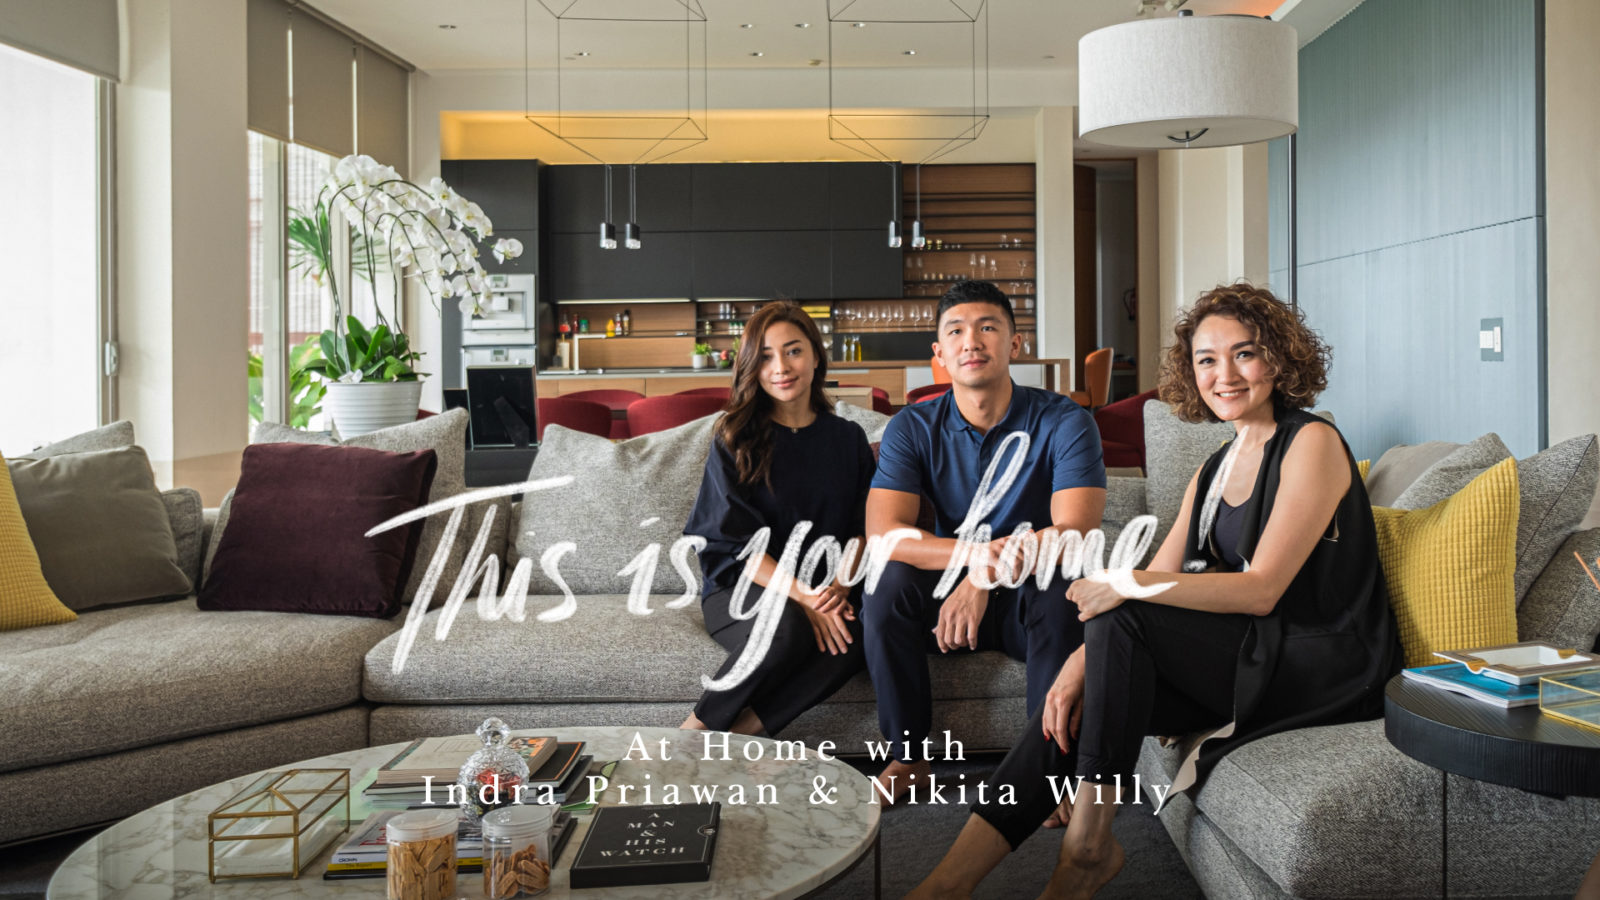 Staying At Home In Style with Indra Priawan and Nikita Willy